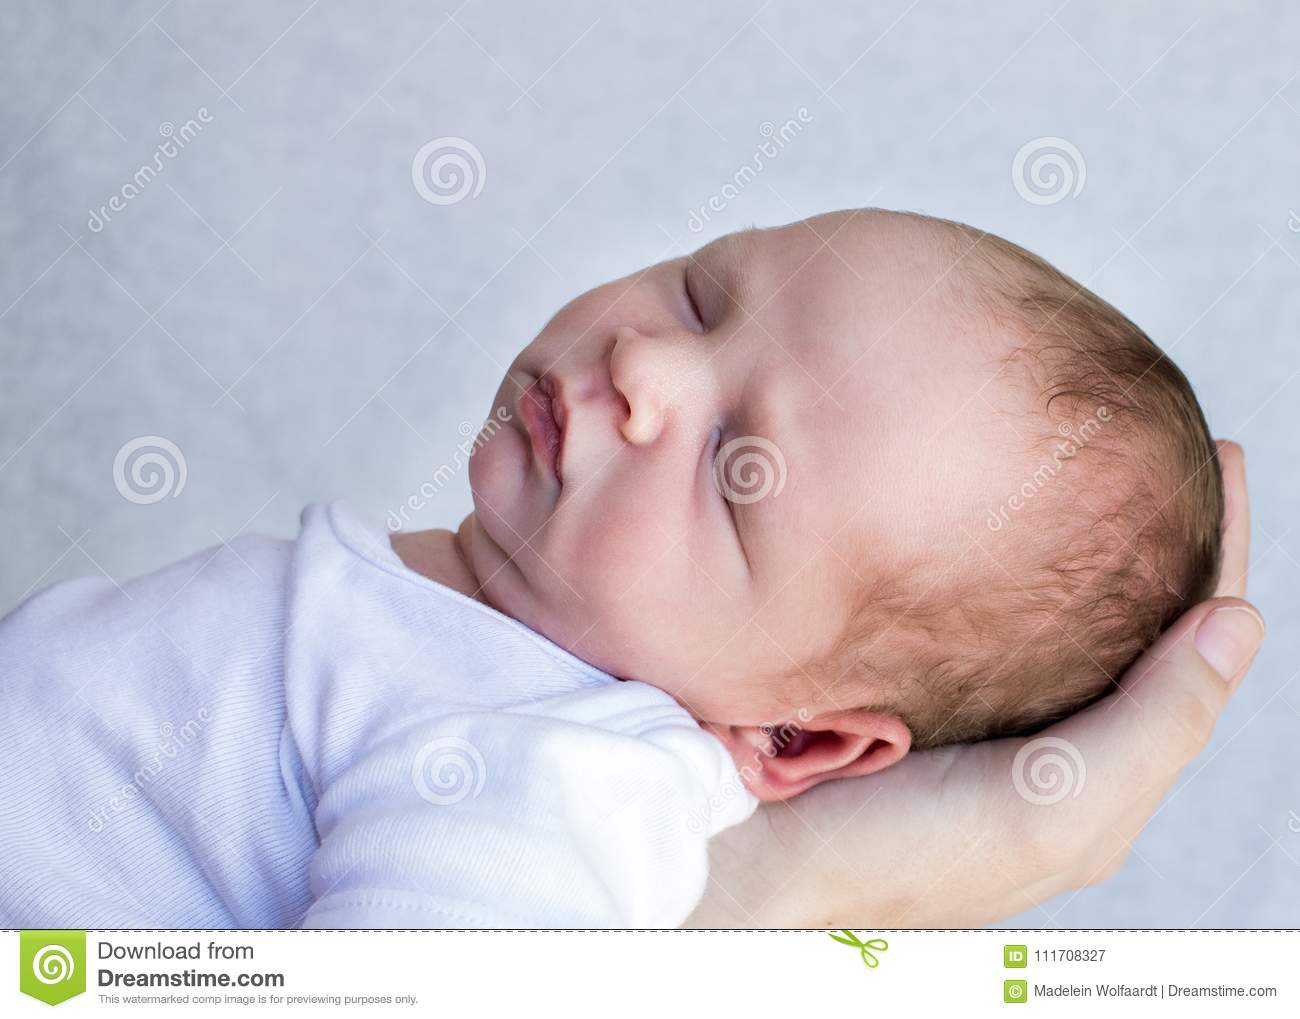 Newborn baby sleeping closeup of his face with a person`s hand